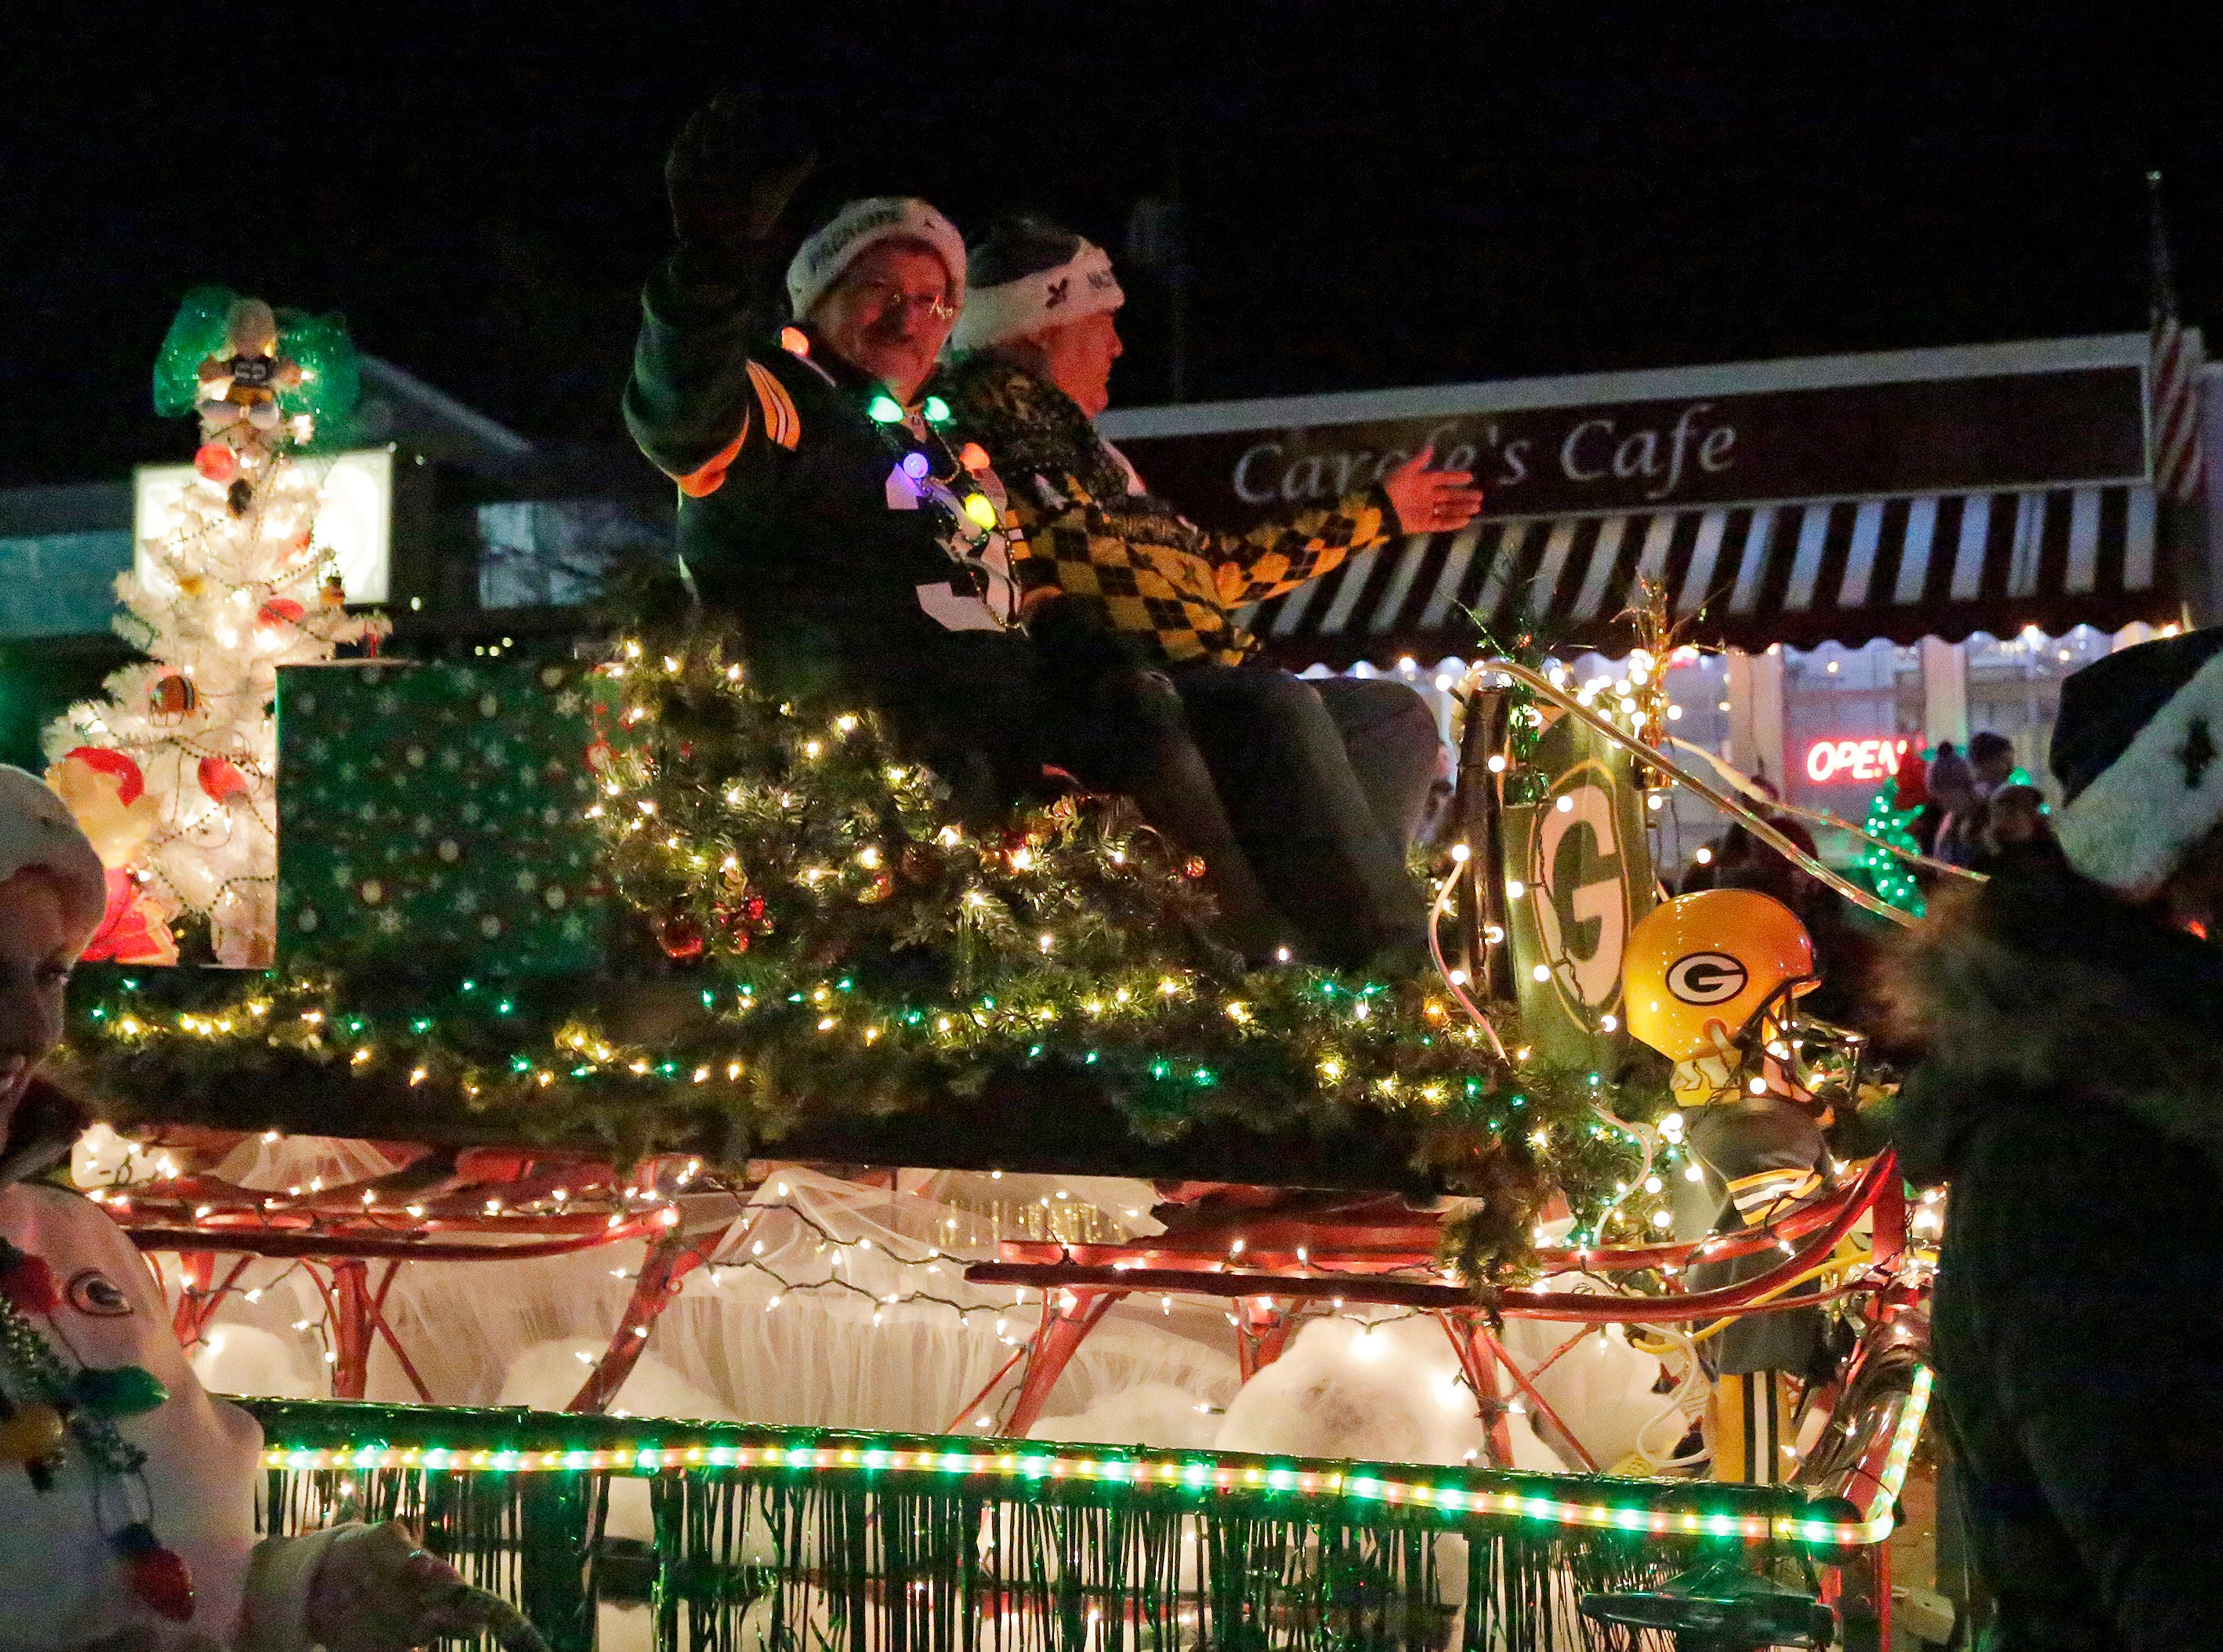 A dream of a Green Bay Packer Santa Claus at the Plymouth Christmas Parade, Friday, November 23, 2018, in Plymouth, Wis.